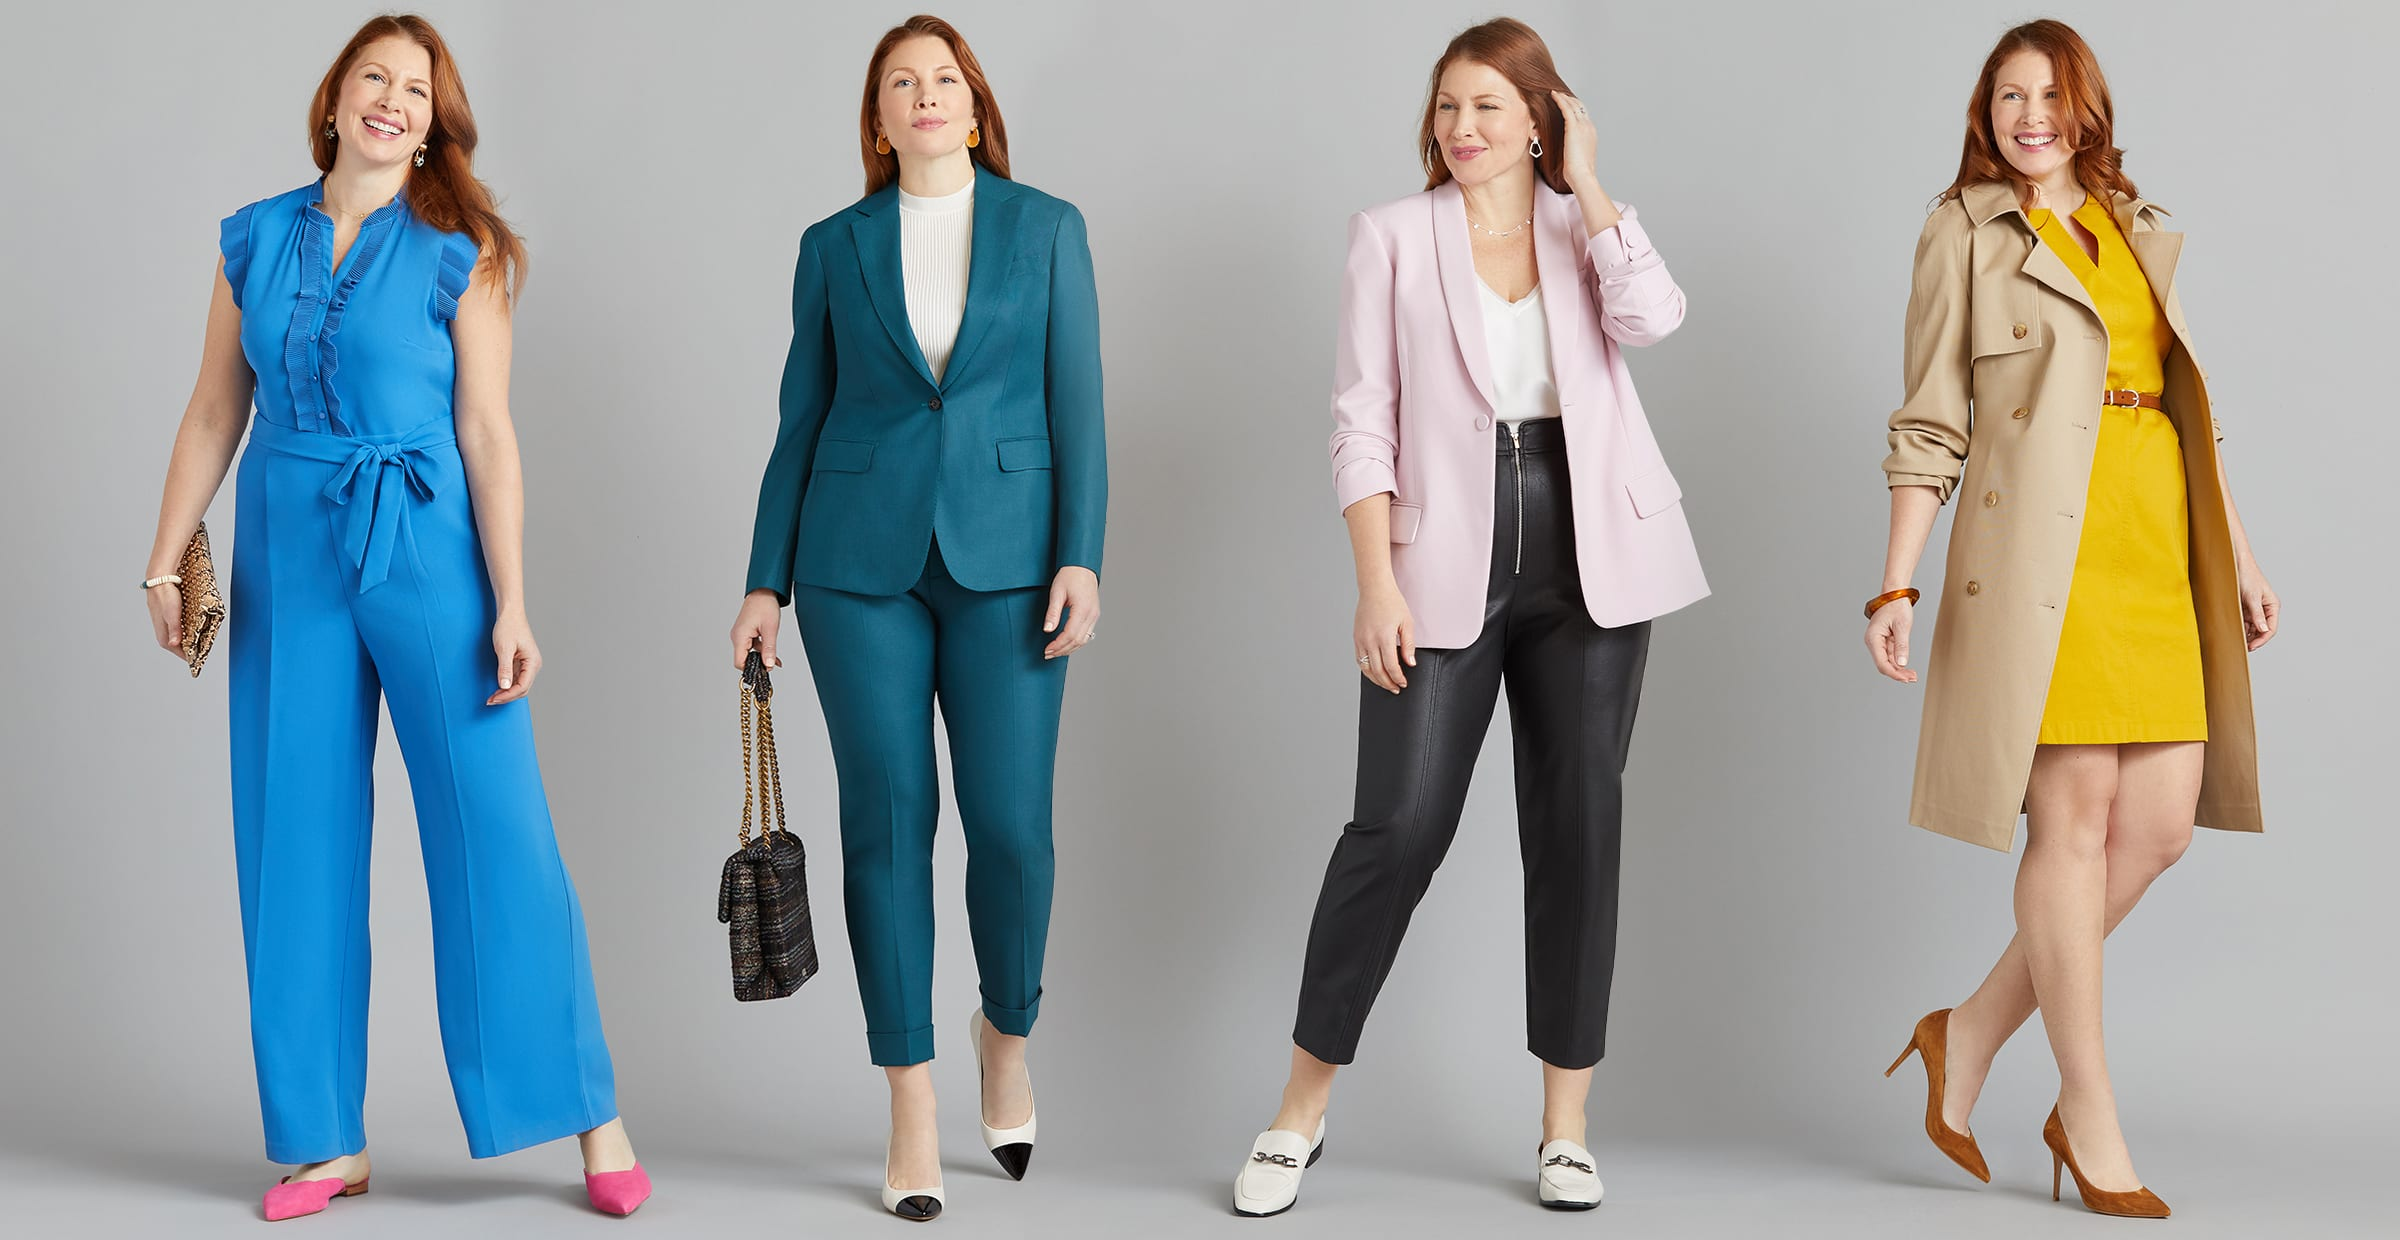 Woman wearing a suit and heels